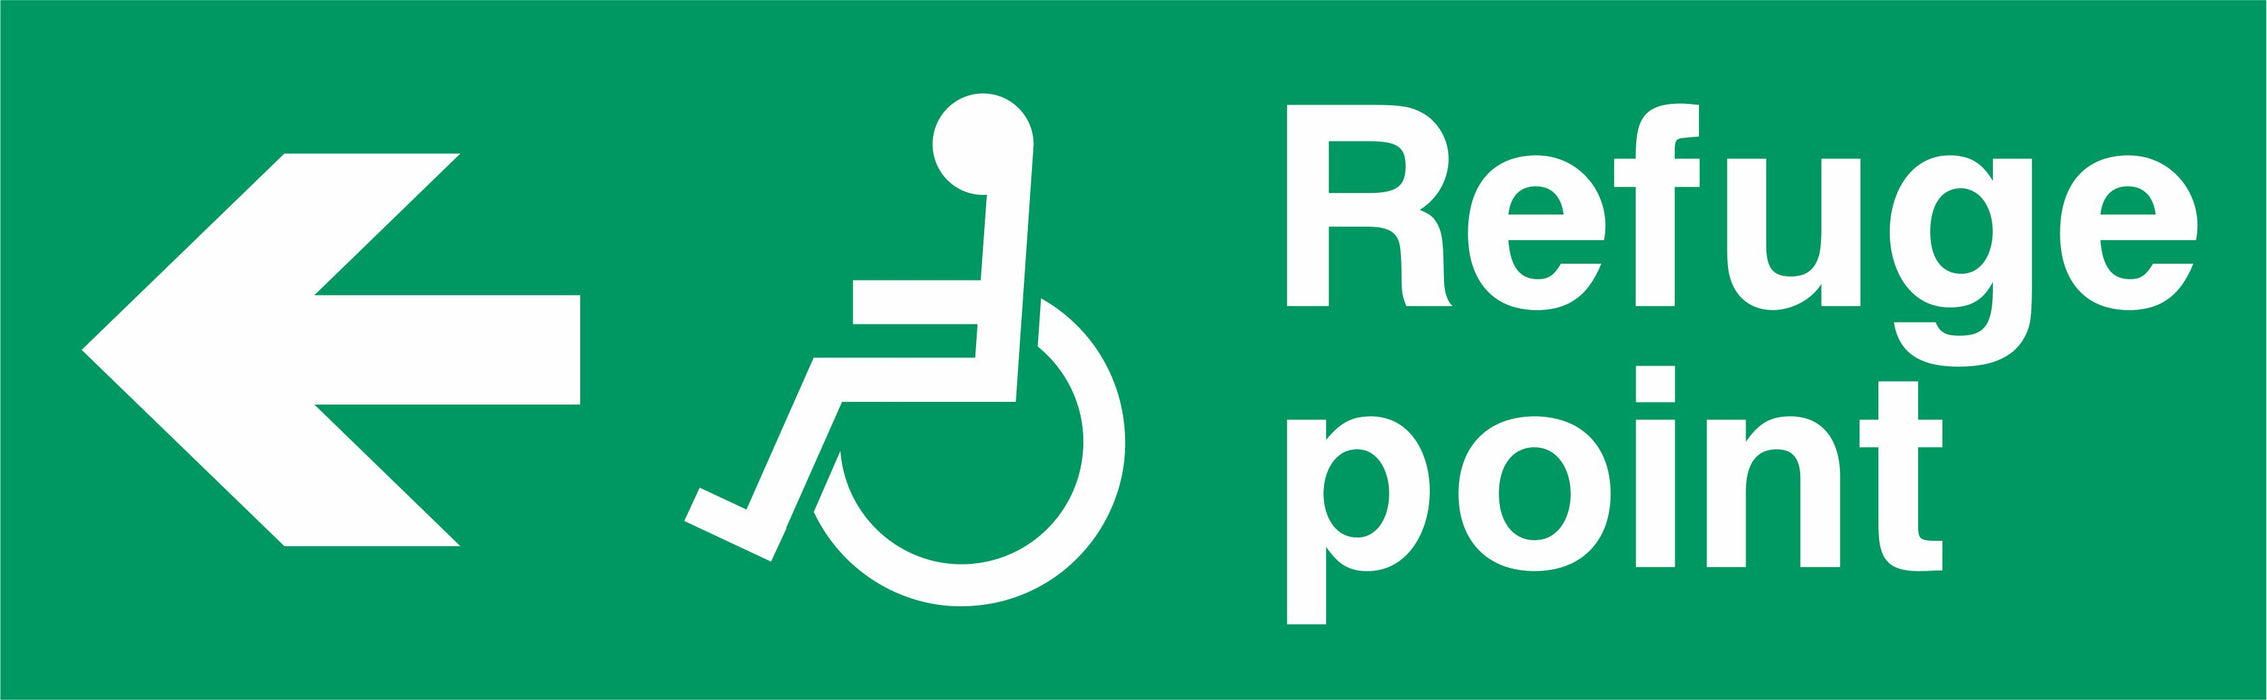 Refuge point - Disabled symbol - Left Arrow